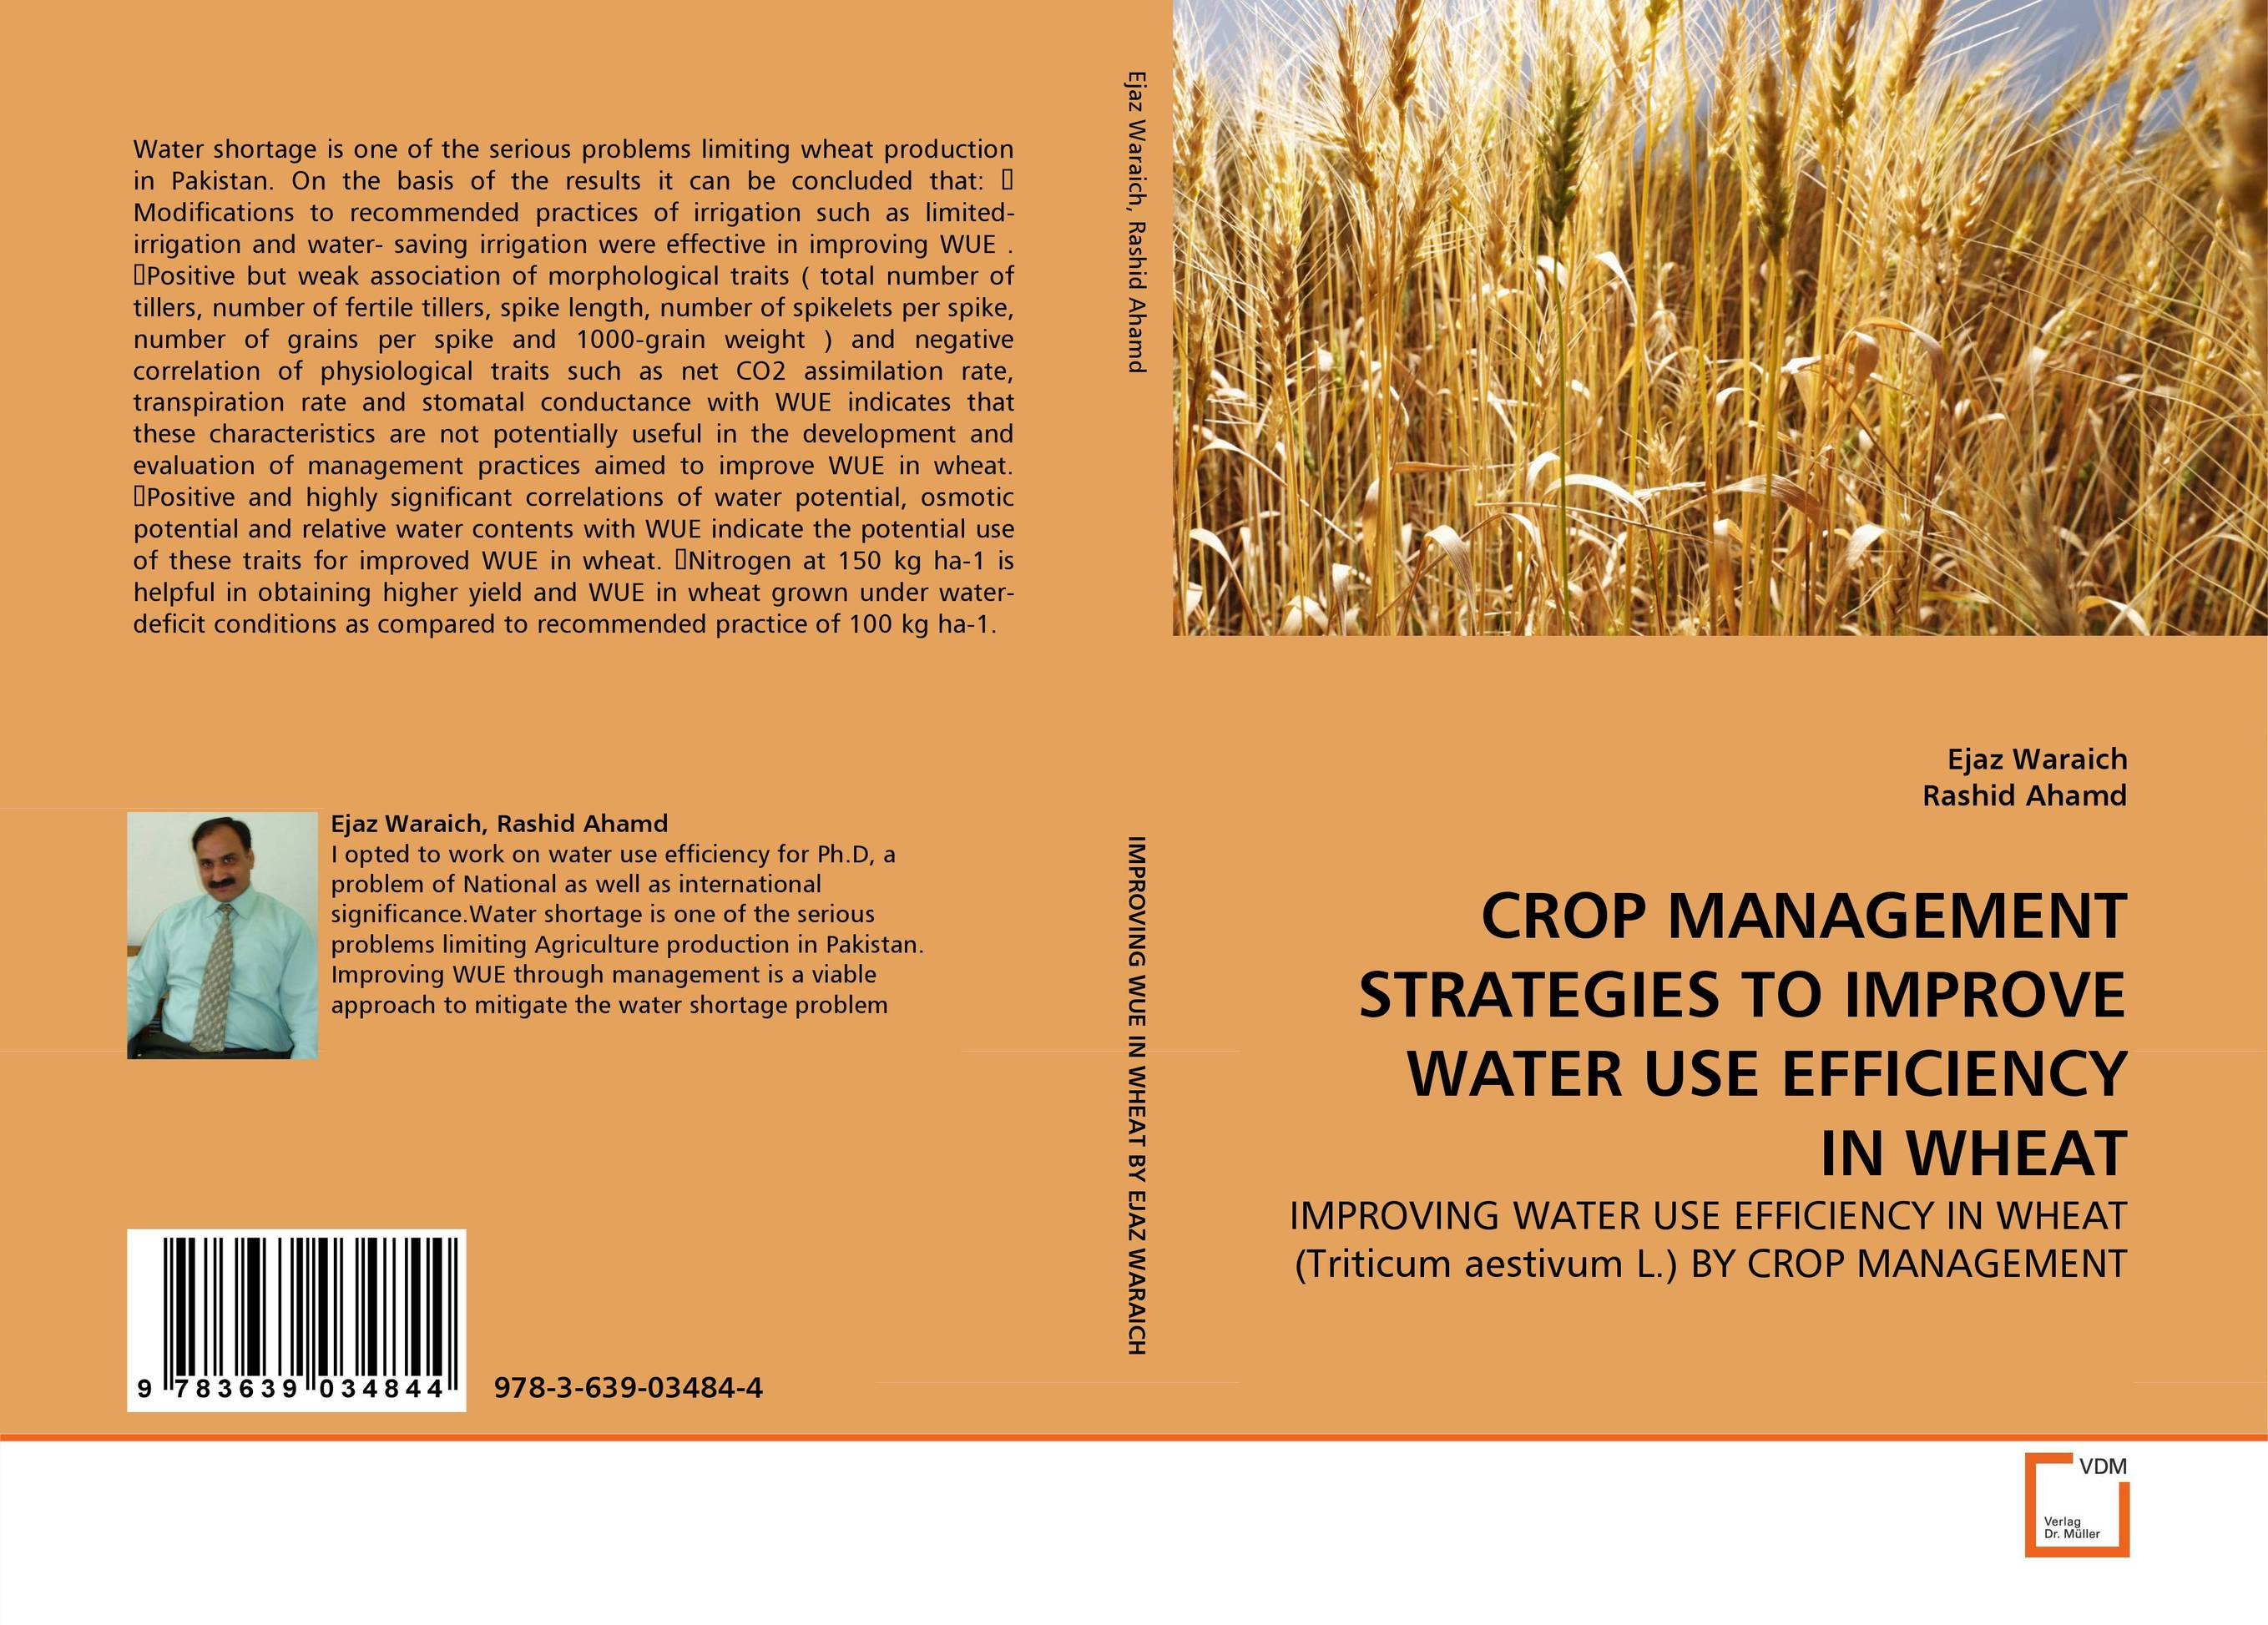 CROP MANAGEMENT STRATEGIES TO IMPROVE WATER USE EFFICIENCY IN WHEAT evaluation of stage wise deficit furrow irrigation